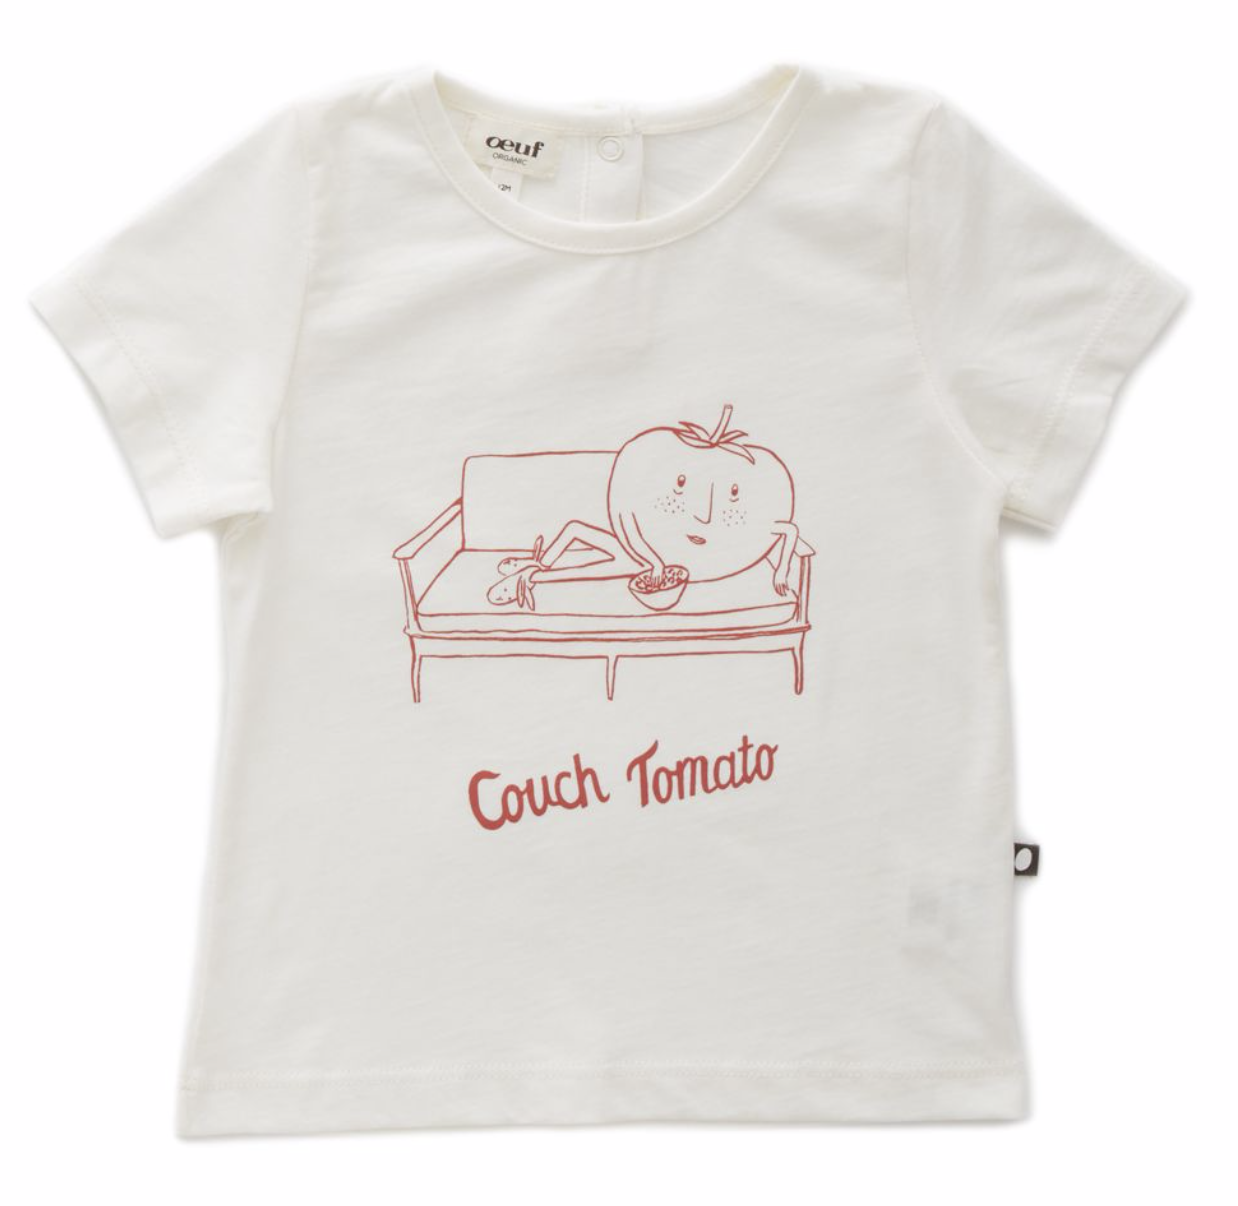 OEUF Couch Tomato Tee Shirt